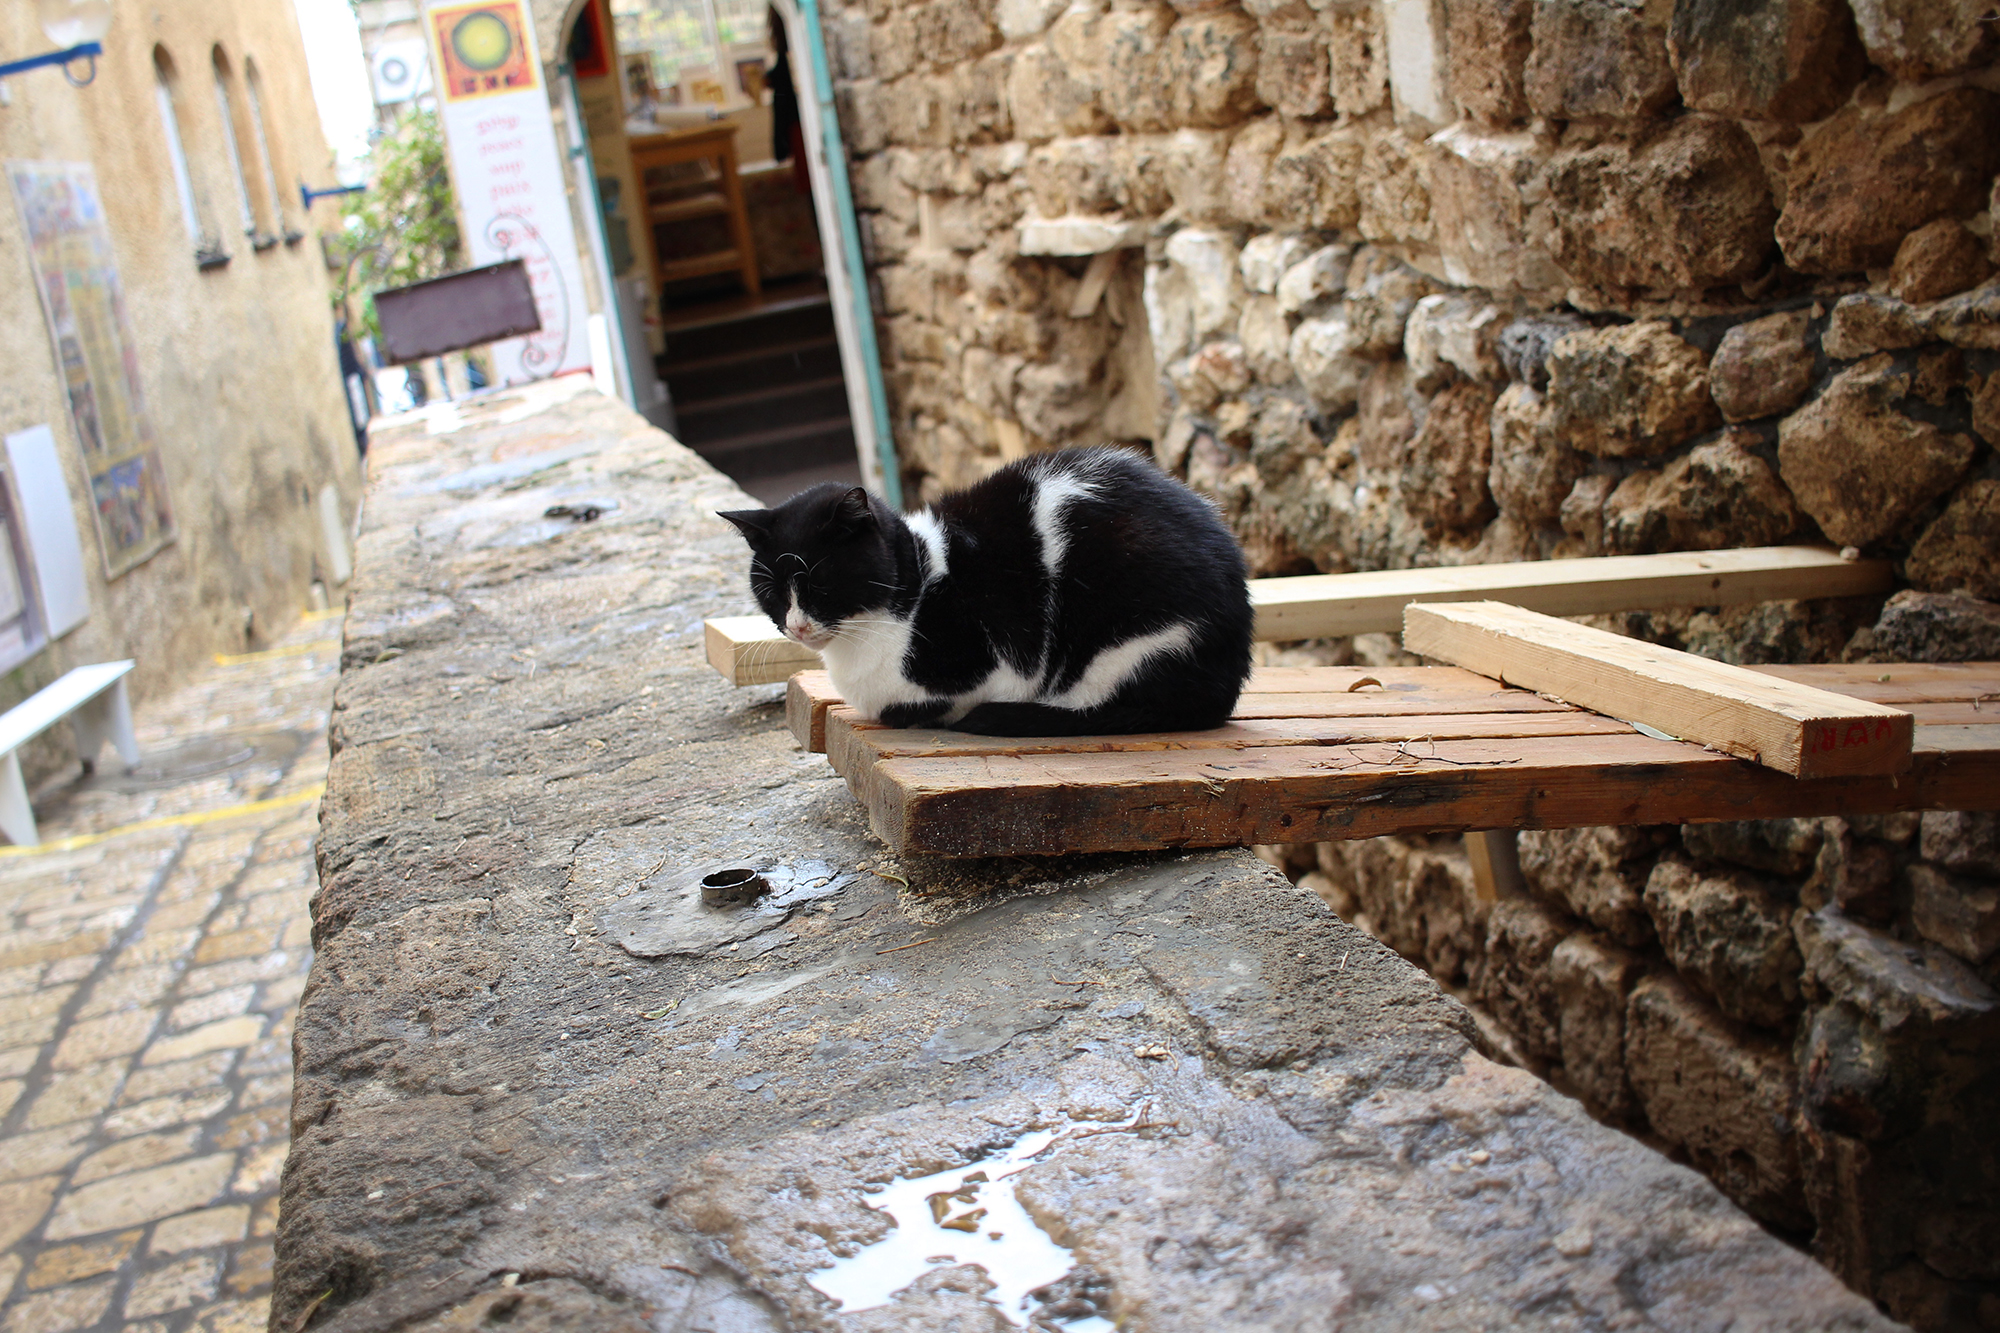 A restful cat in the alley of Old Jaffa's artist district, Tel-Aviv, Israel. Photography by Geena Matuson @geenamatuson #thegirlmirage.